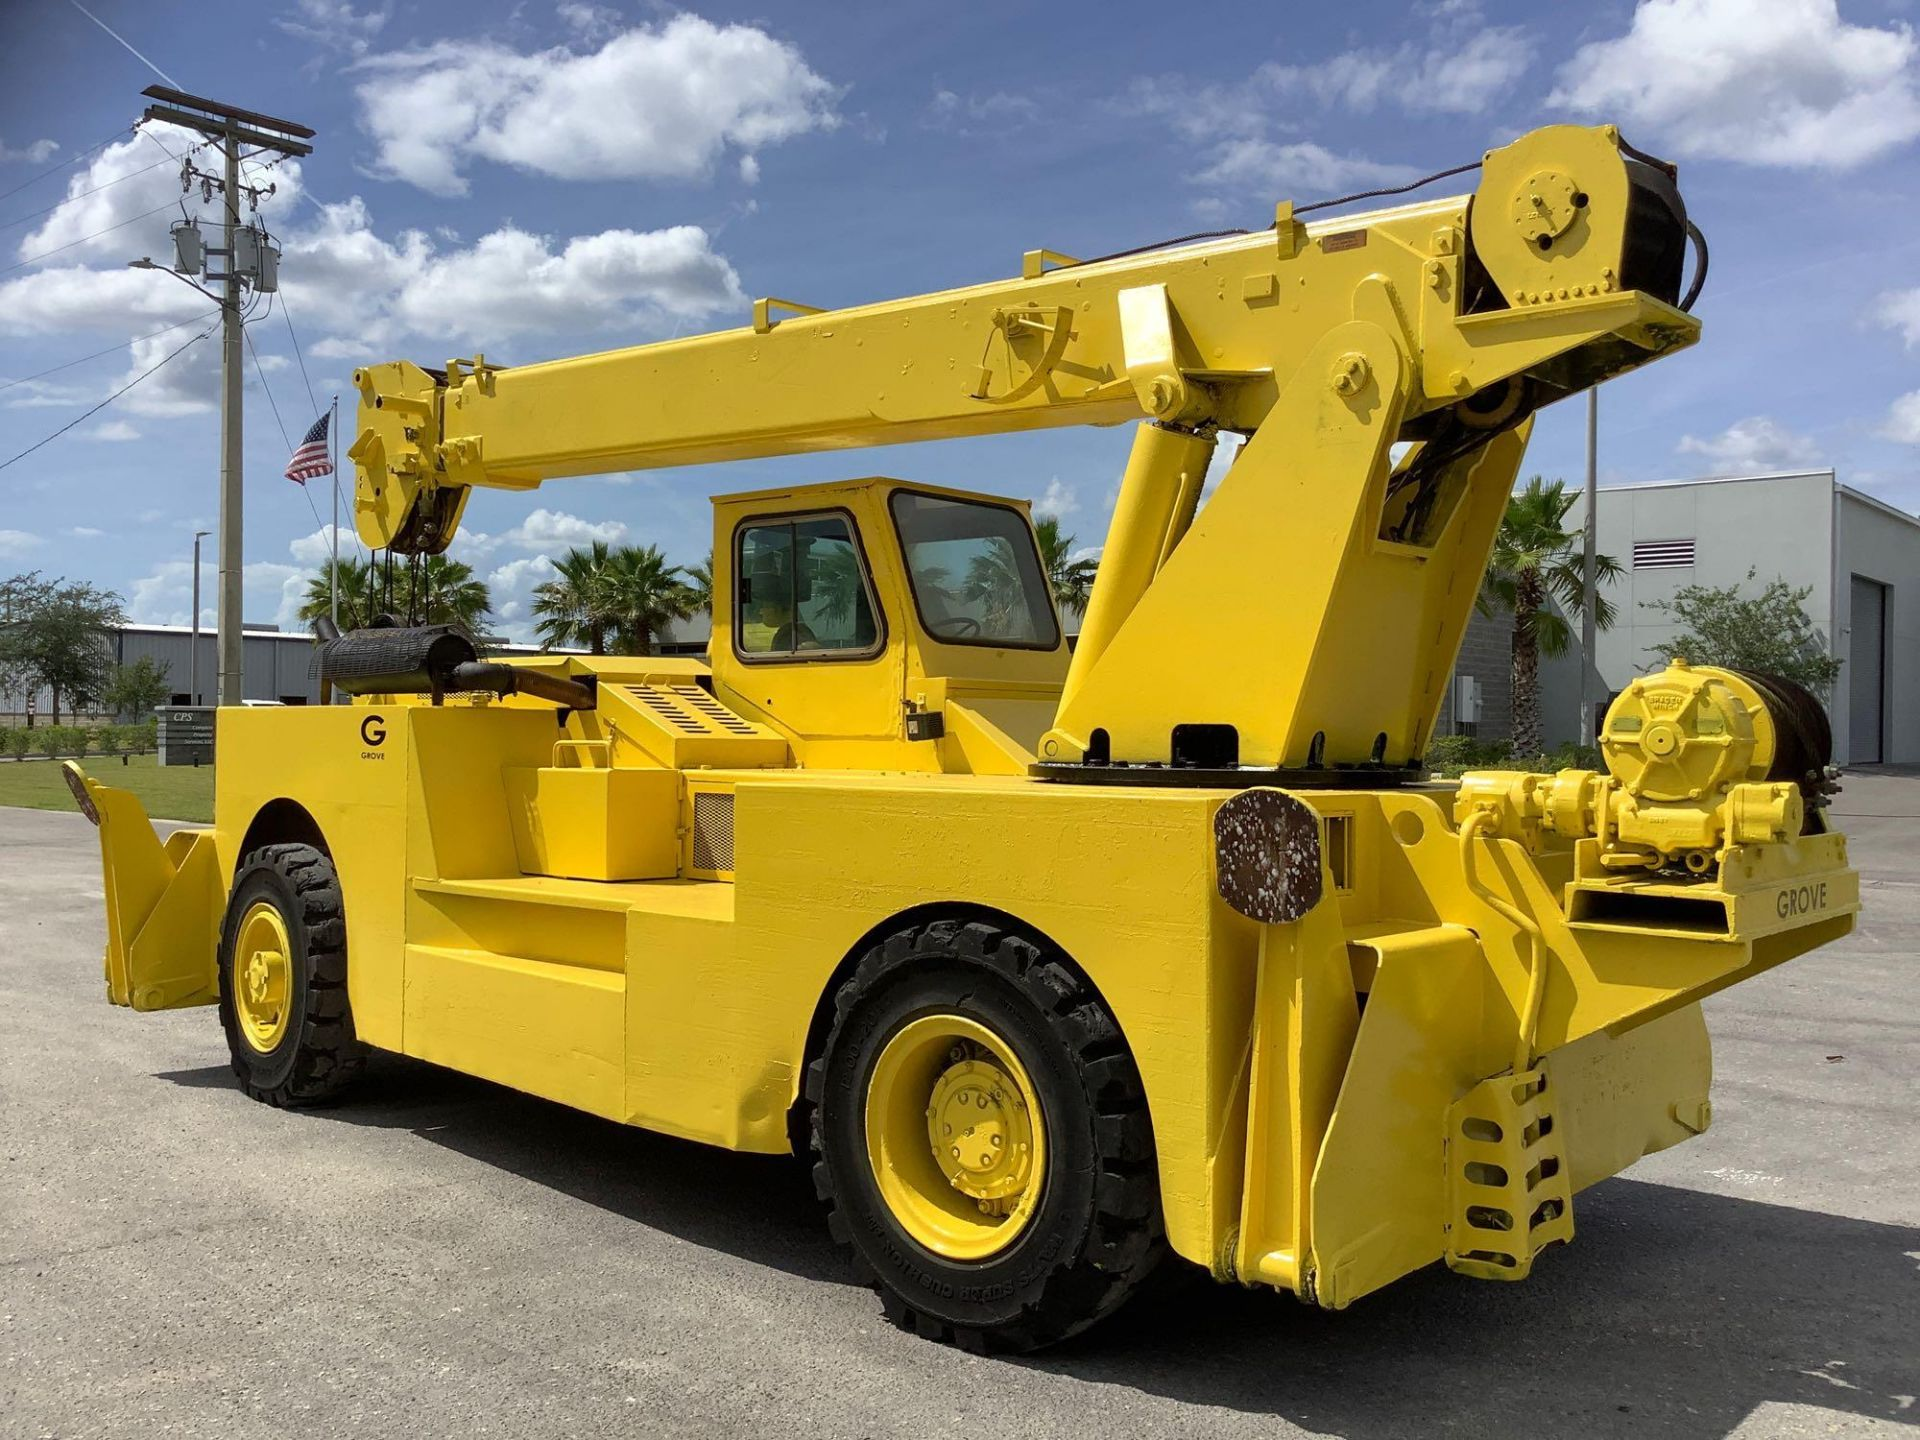 GROVE TRUCK CRANE MODEL IND1012, HYDRAULIC, TELESCOPIC, DIESEL,OUTRIGGER, RUNS AND OPERATES - Image 10 of 18